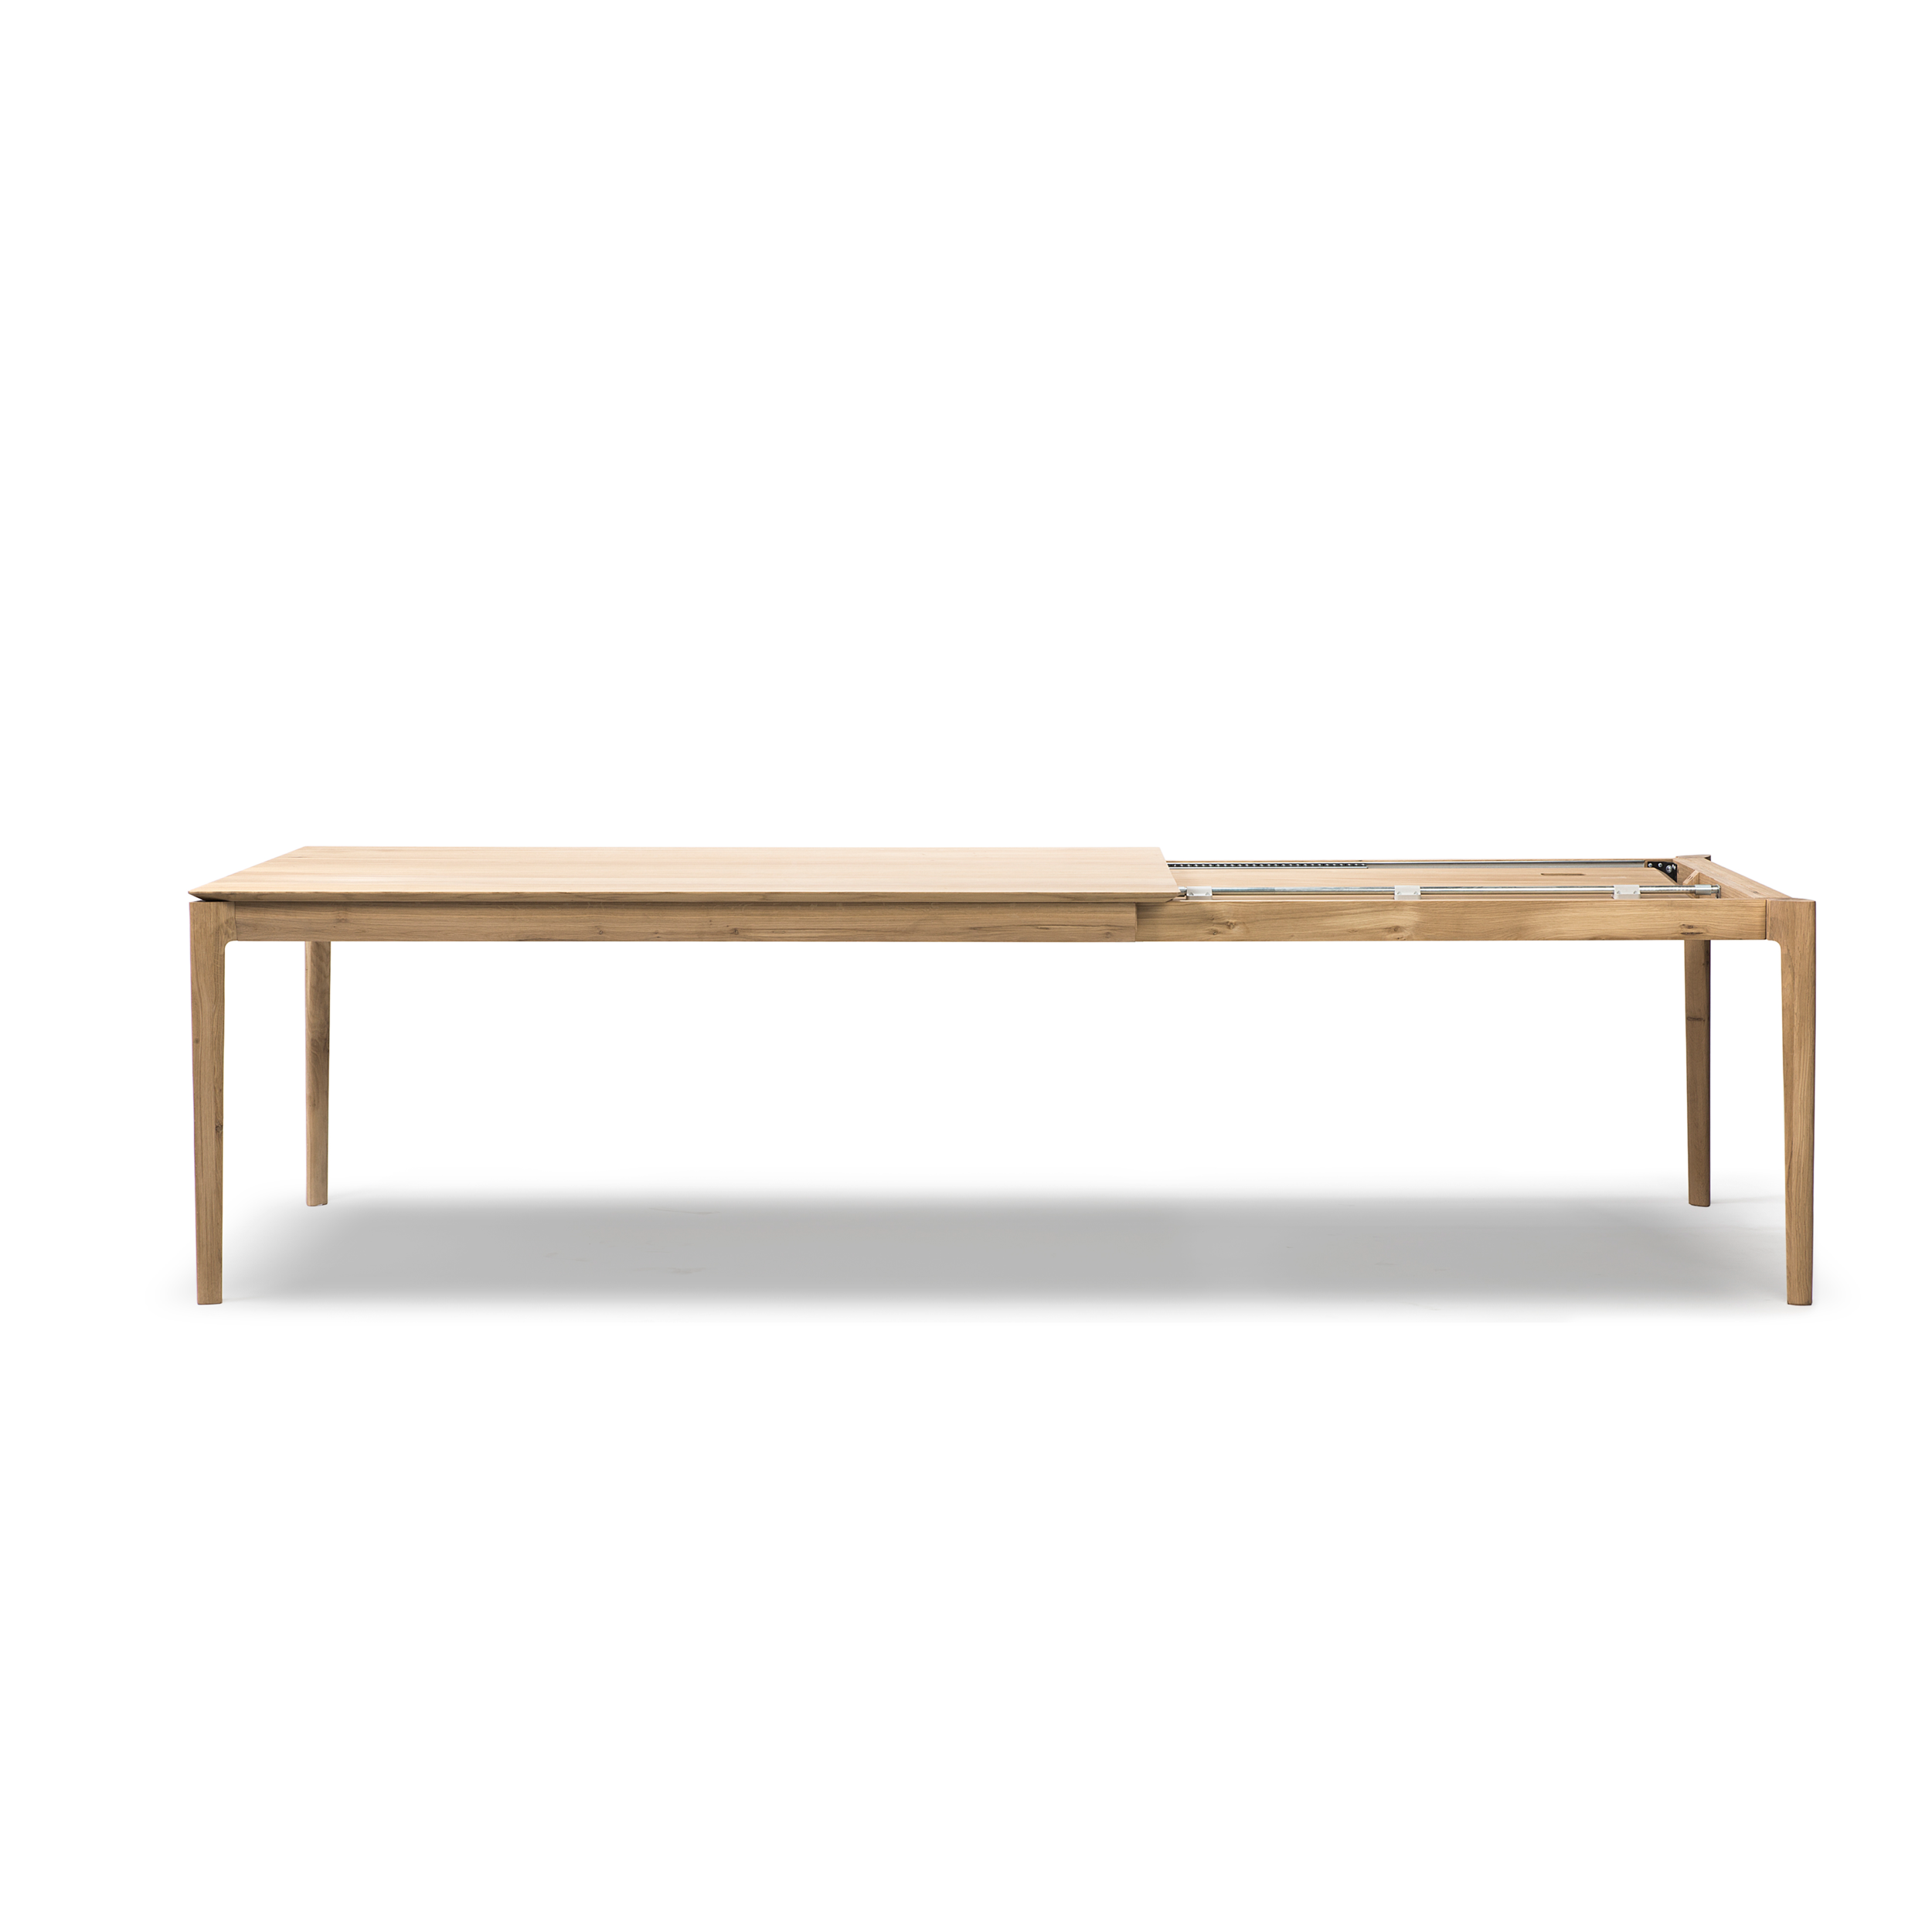 51502, 51503 & 51504 Oak Bok extendable dining table_extend.jpg.png